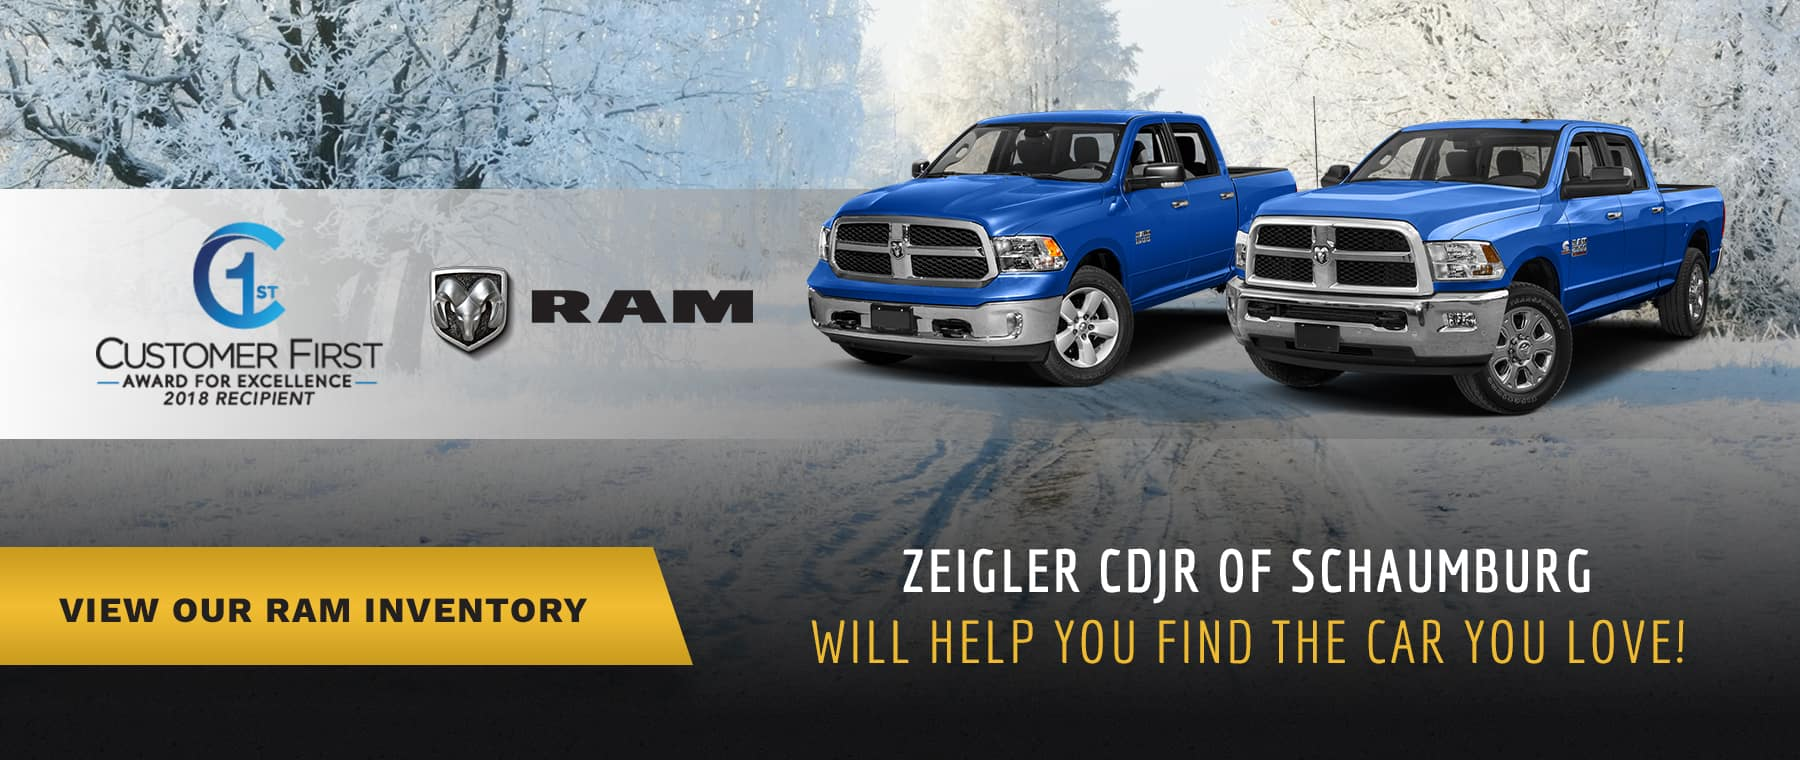 Zeigler Cdjr Schaumburg Auto Dealer Repair And Parts